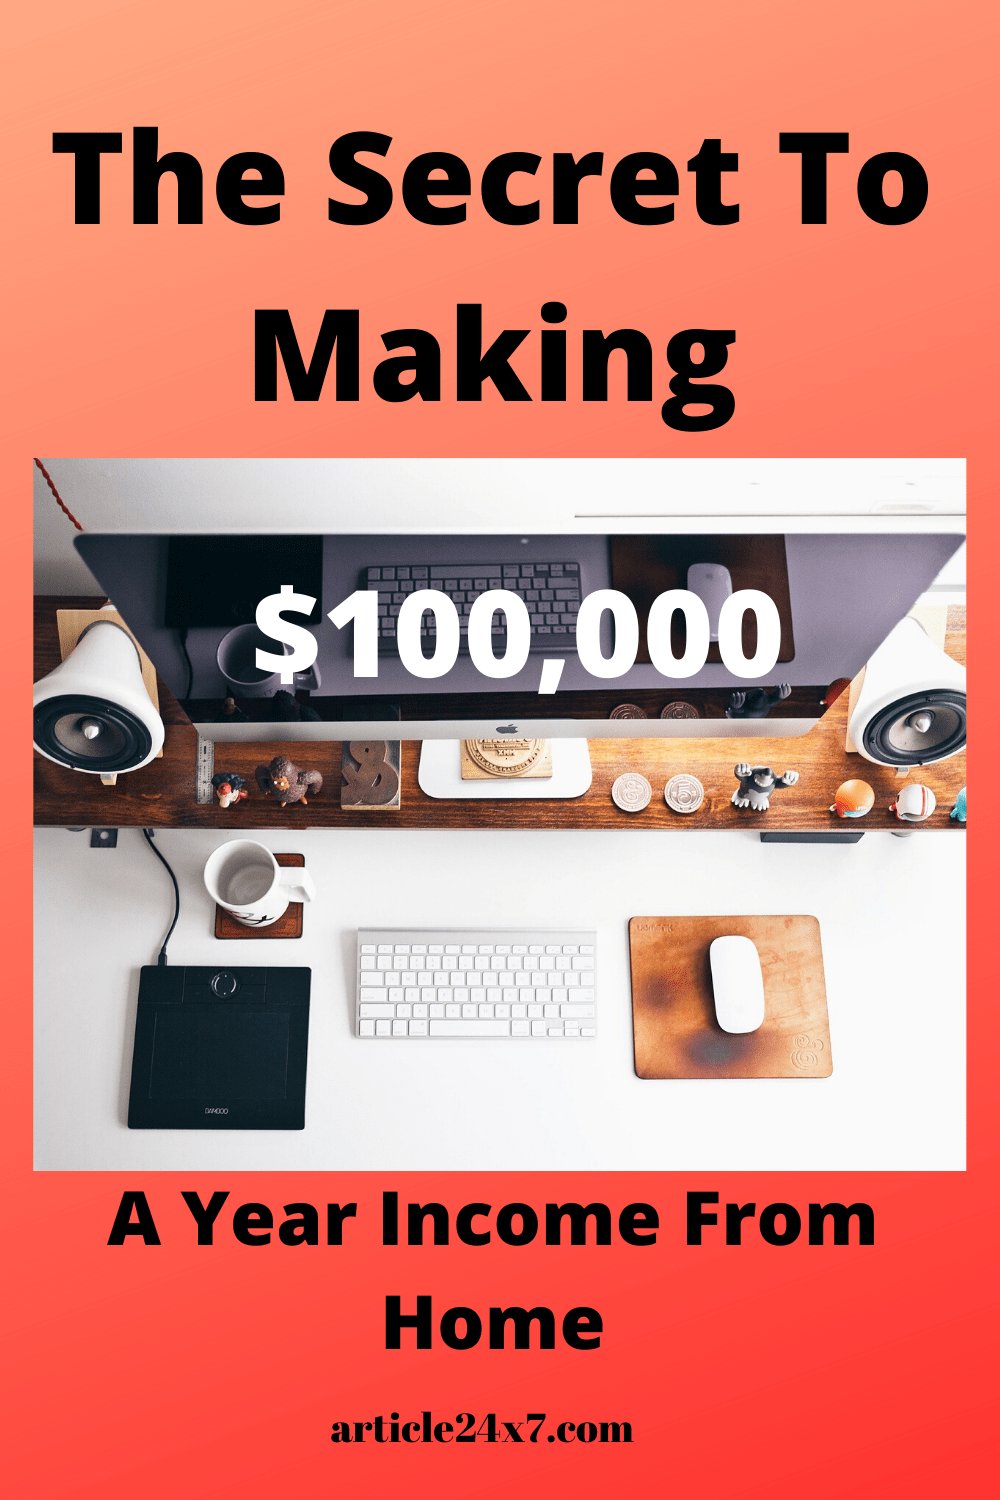 How To Make $100,000